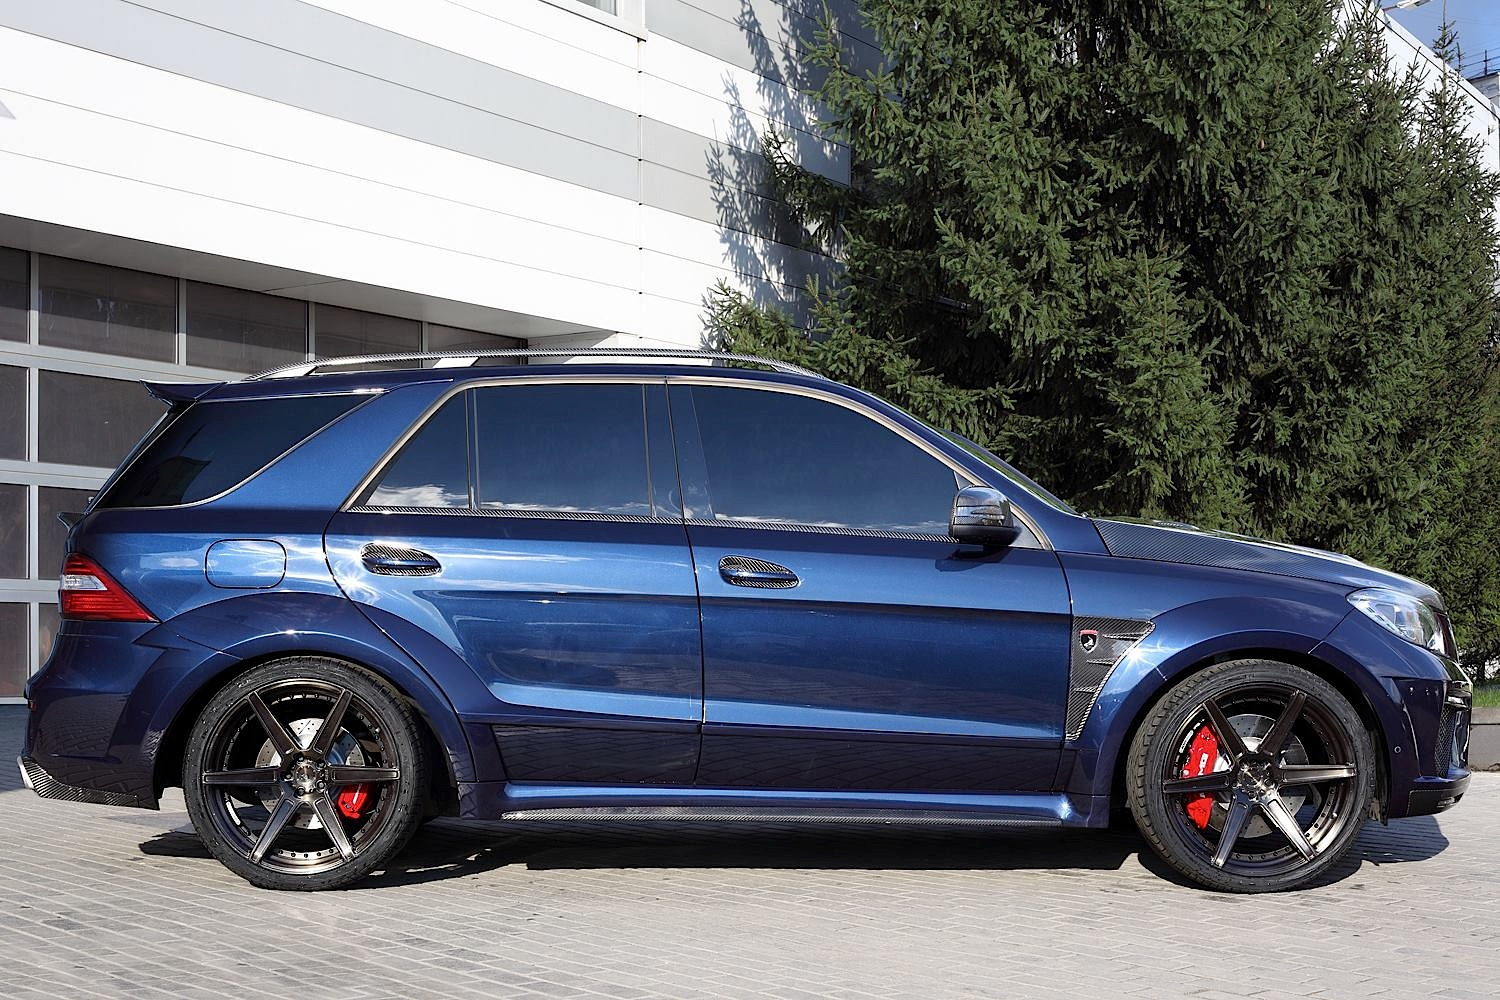 TopCar's ML 63 AMG Inferno in Dark Blue Looks Eerie ...